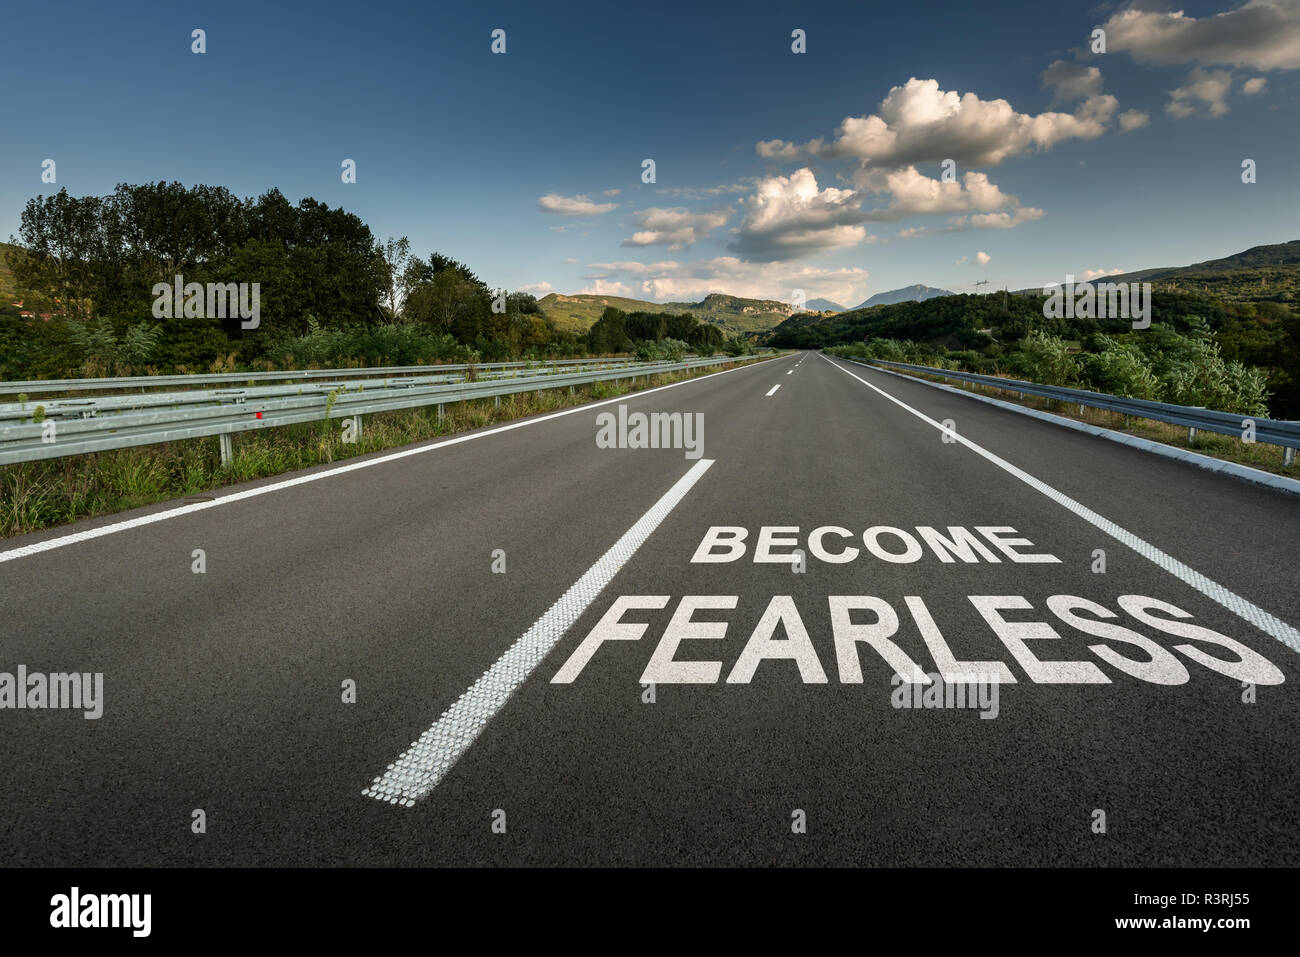 Become Fearless message on Asphalt highway road through the countryside to the mountains - Stock Image